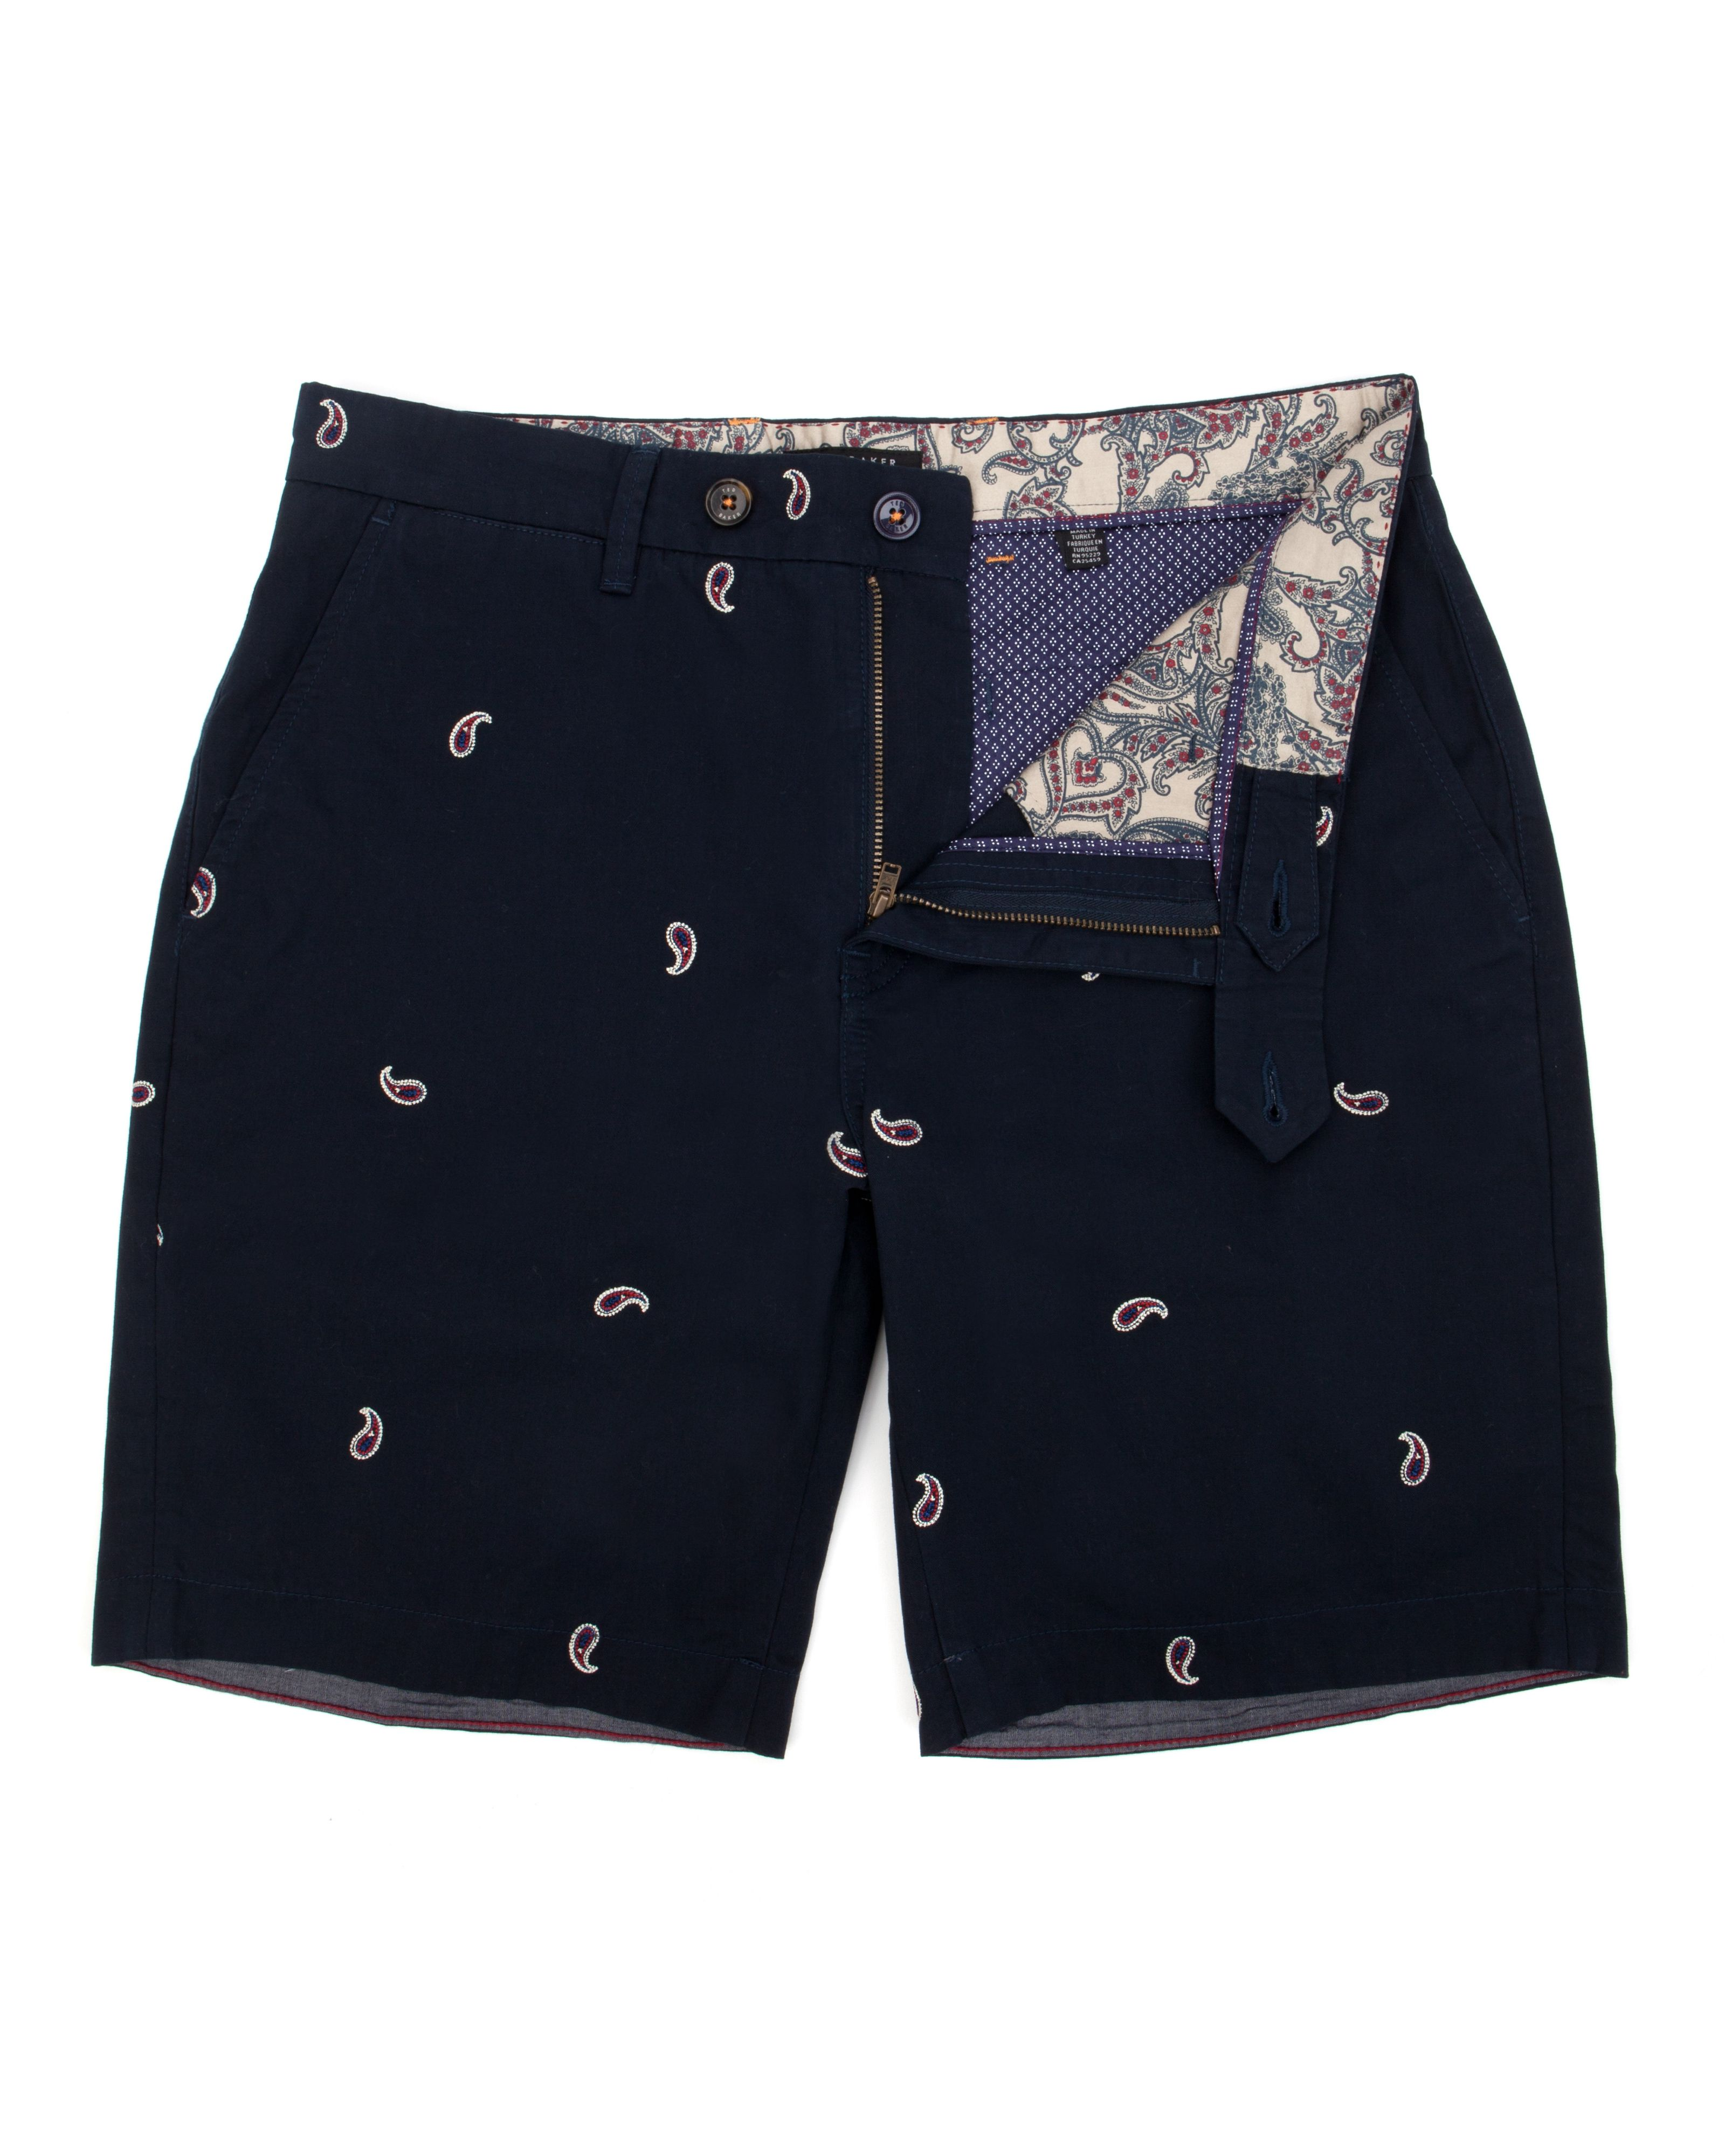 Paisyay paisley embroidered shorts